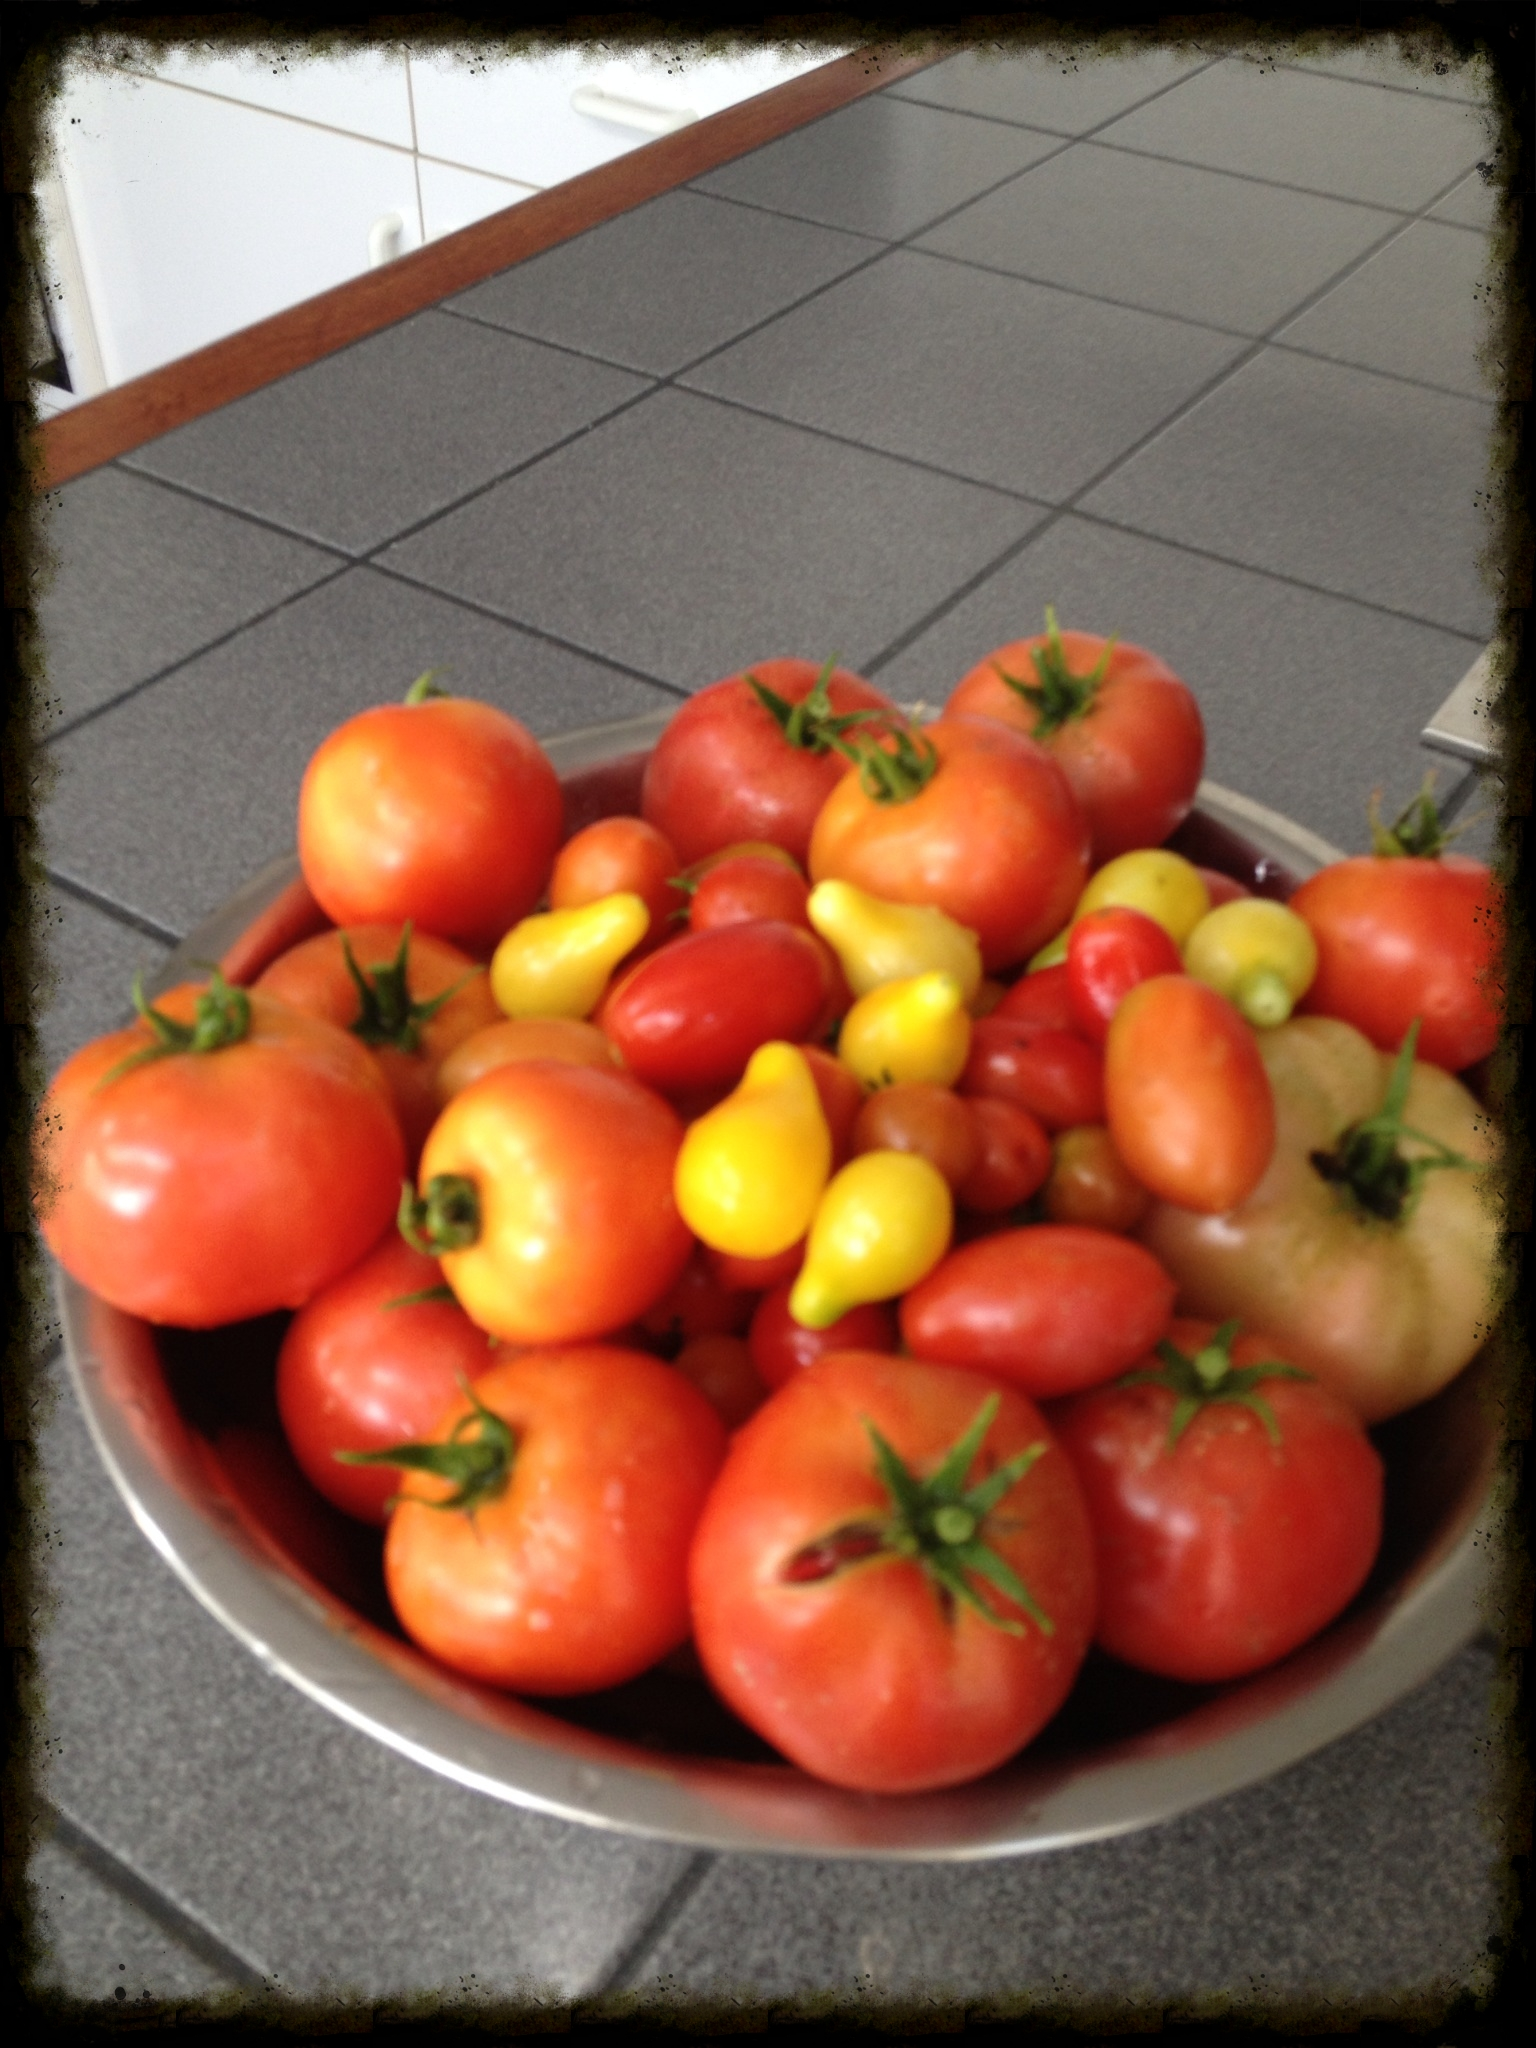 Tomatoes from my garden.